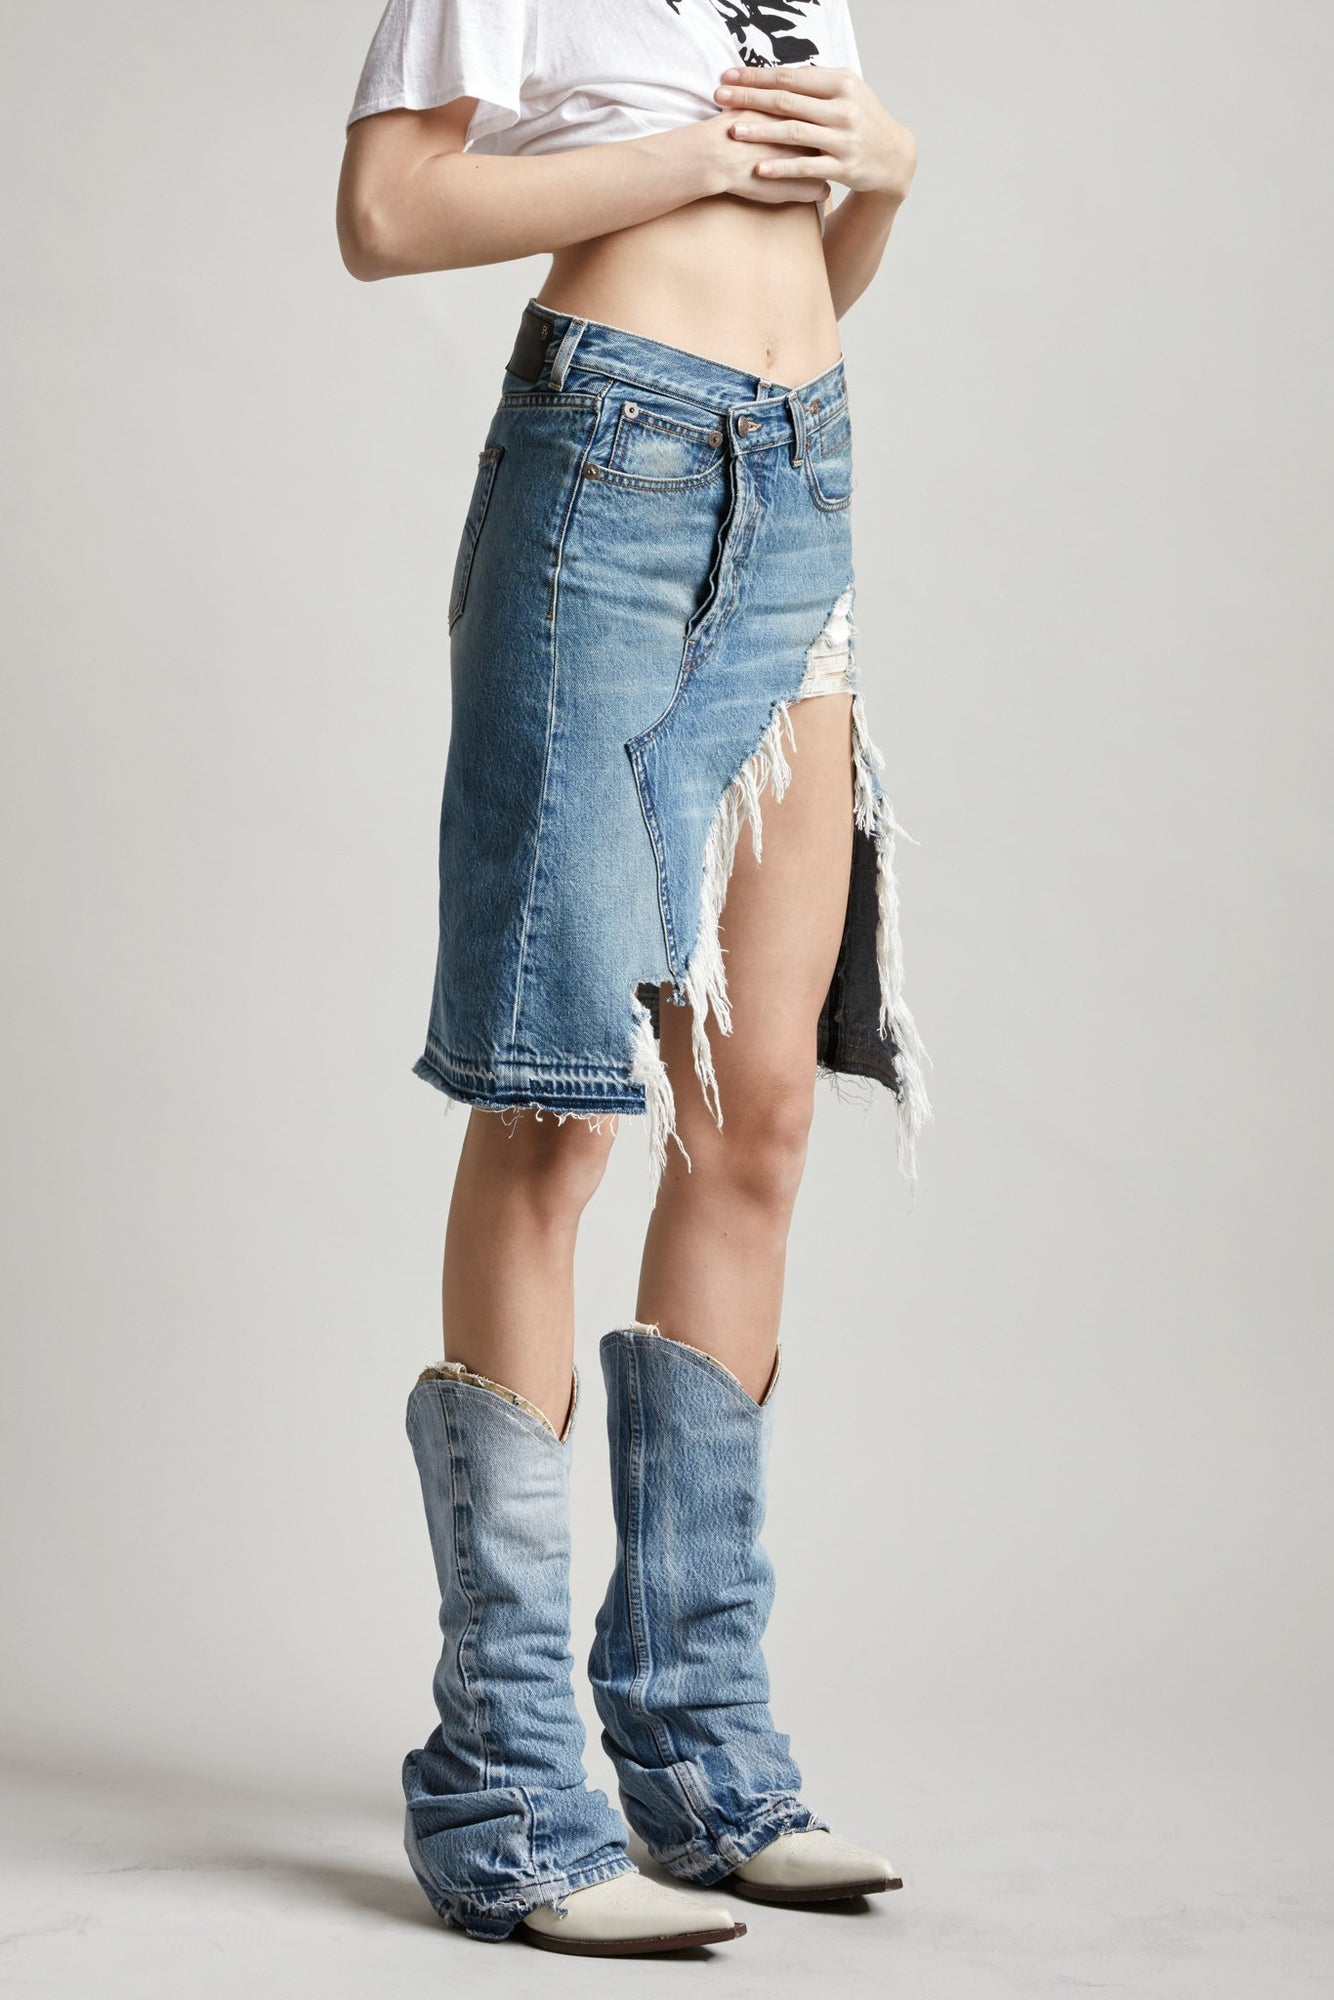 NORBURY DENIM SKIRT - JASPER